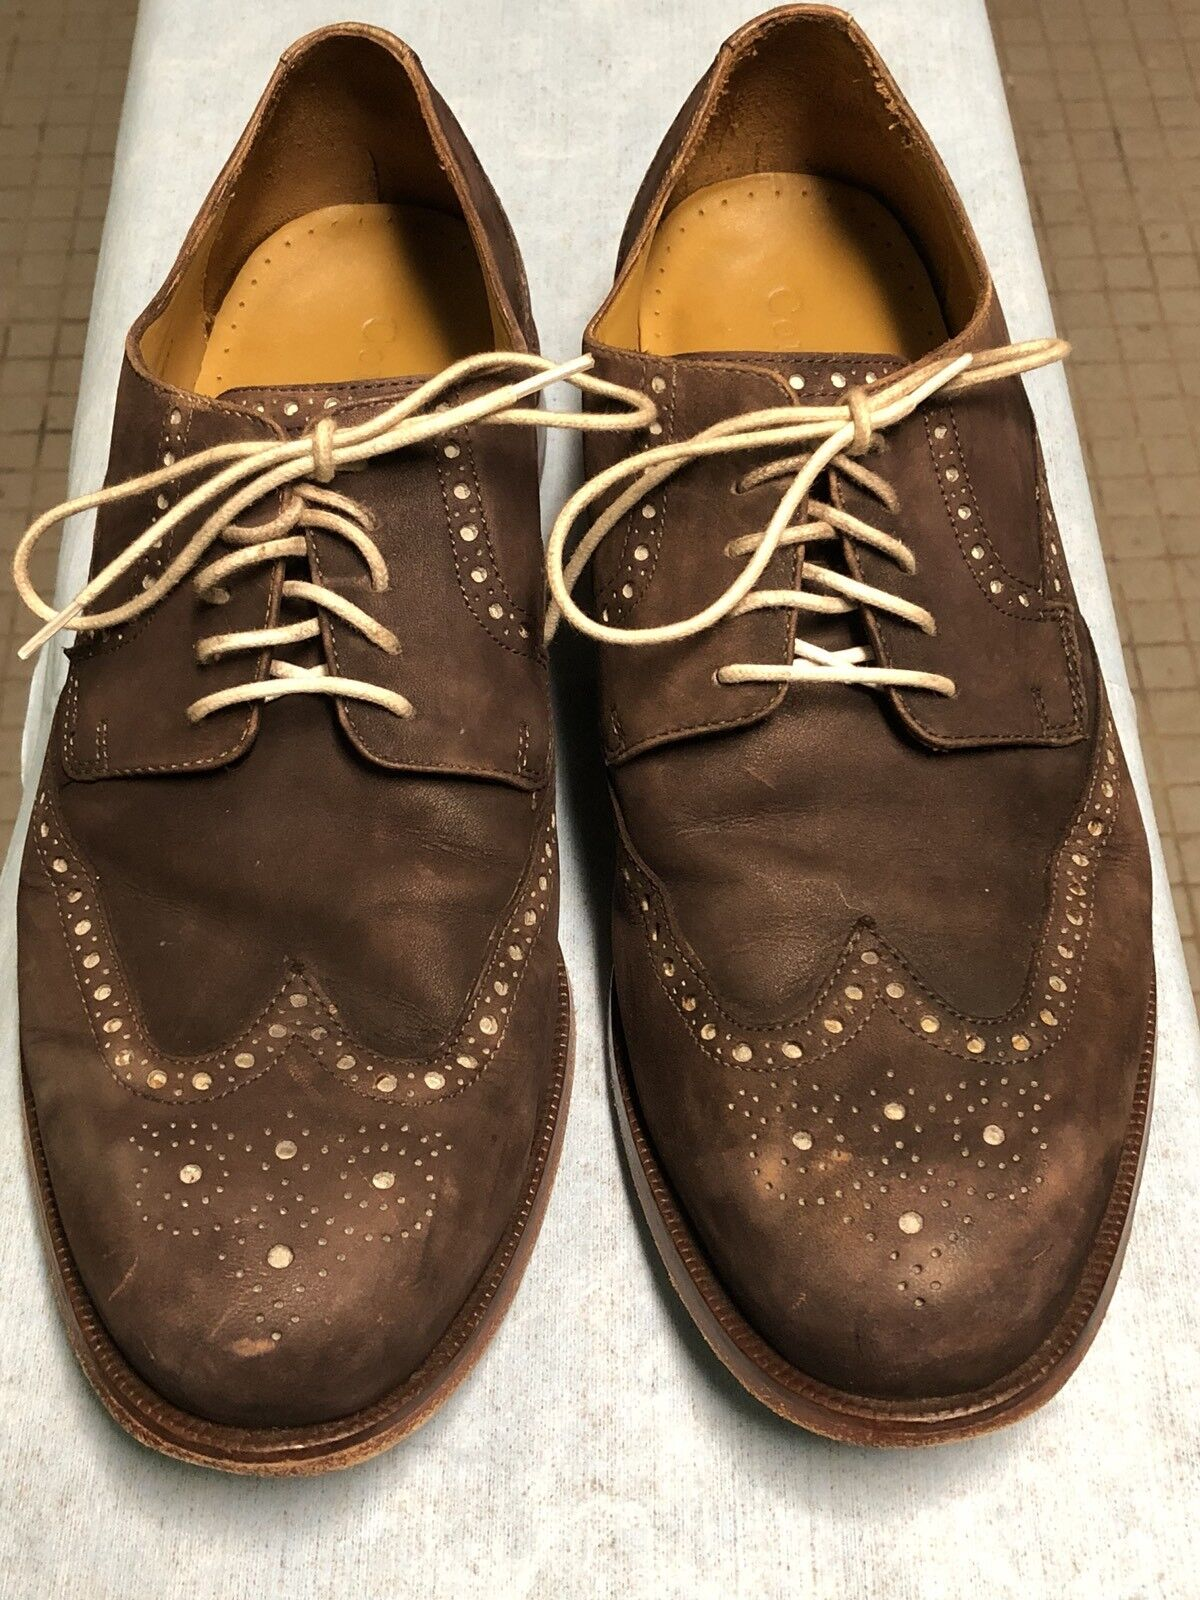 Cole Haan Brown Suede Wingtip shoes Size 10 M